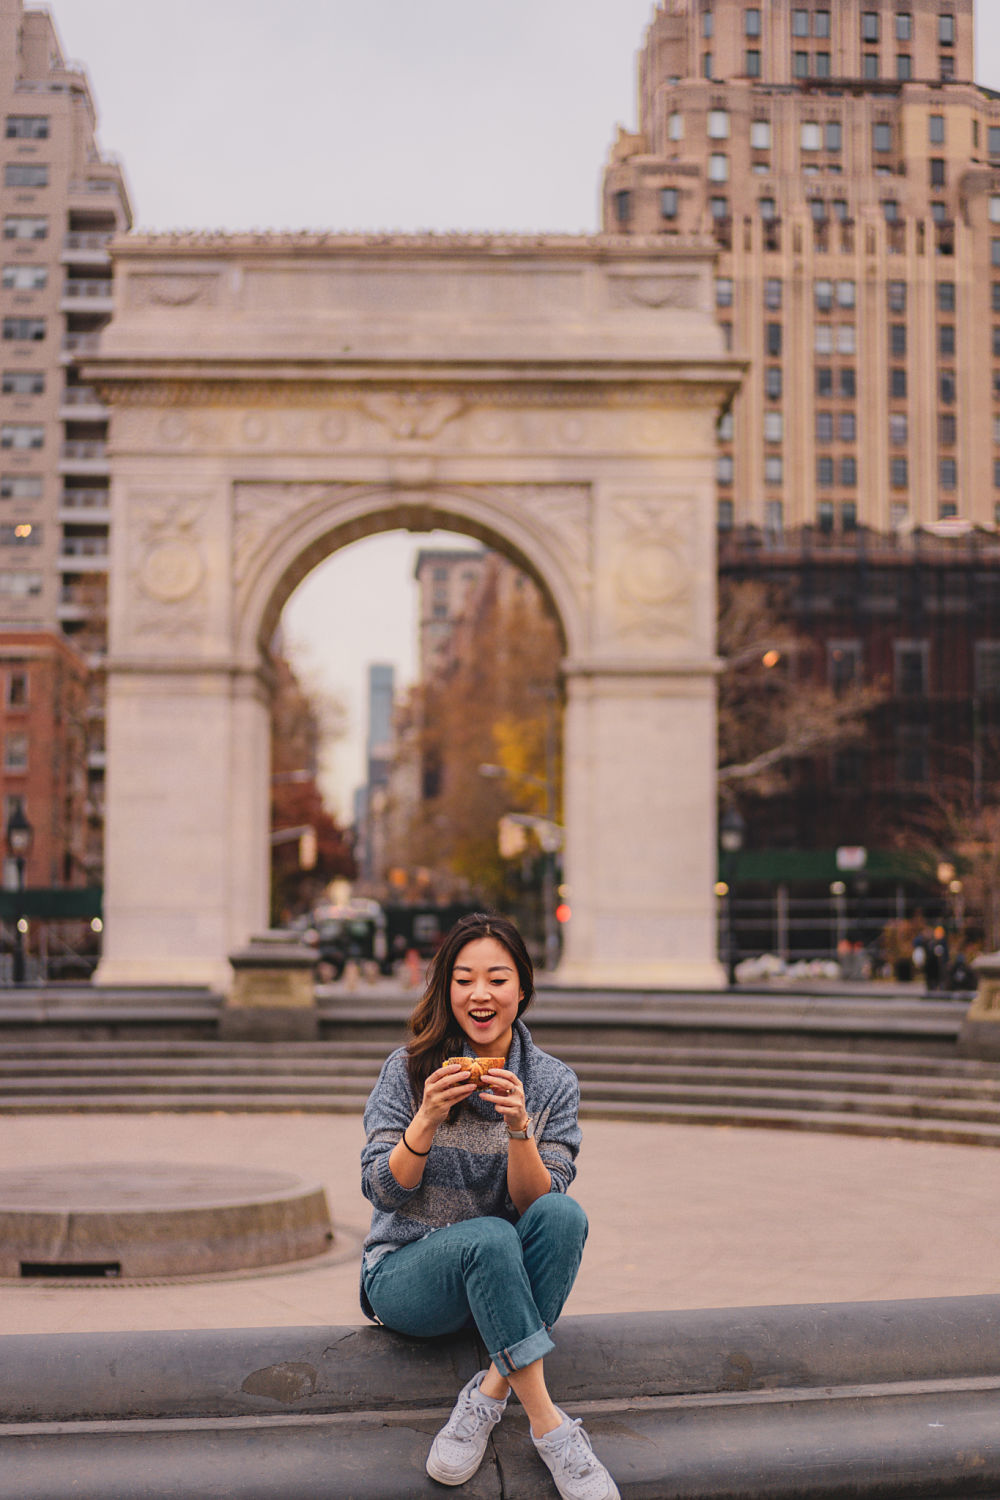 A girl eating a bagel in Washington Square Park in Manhattan New York City